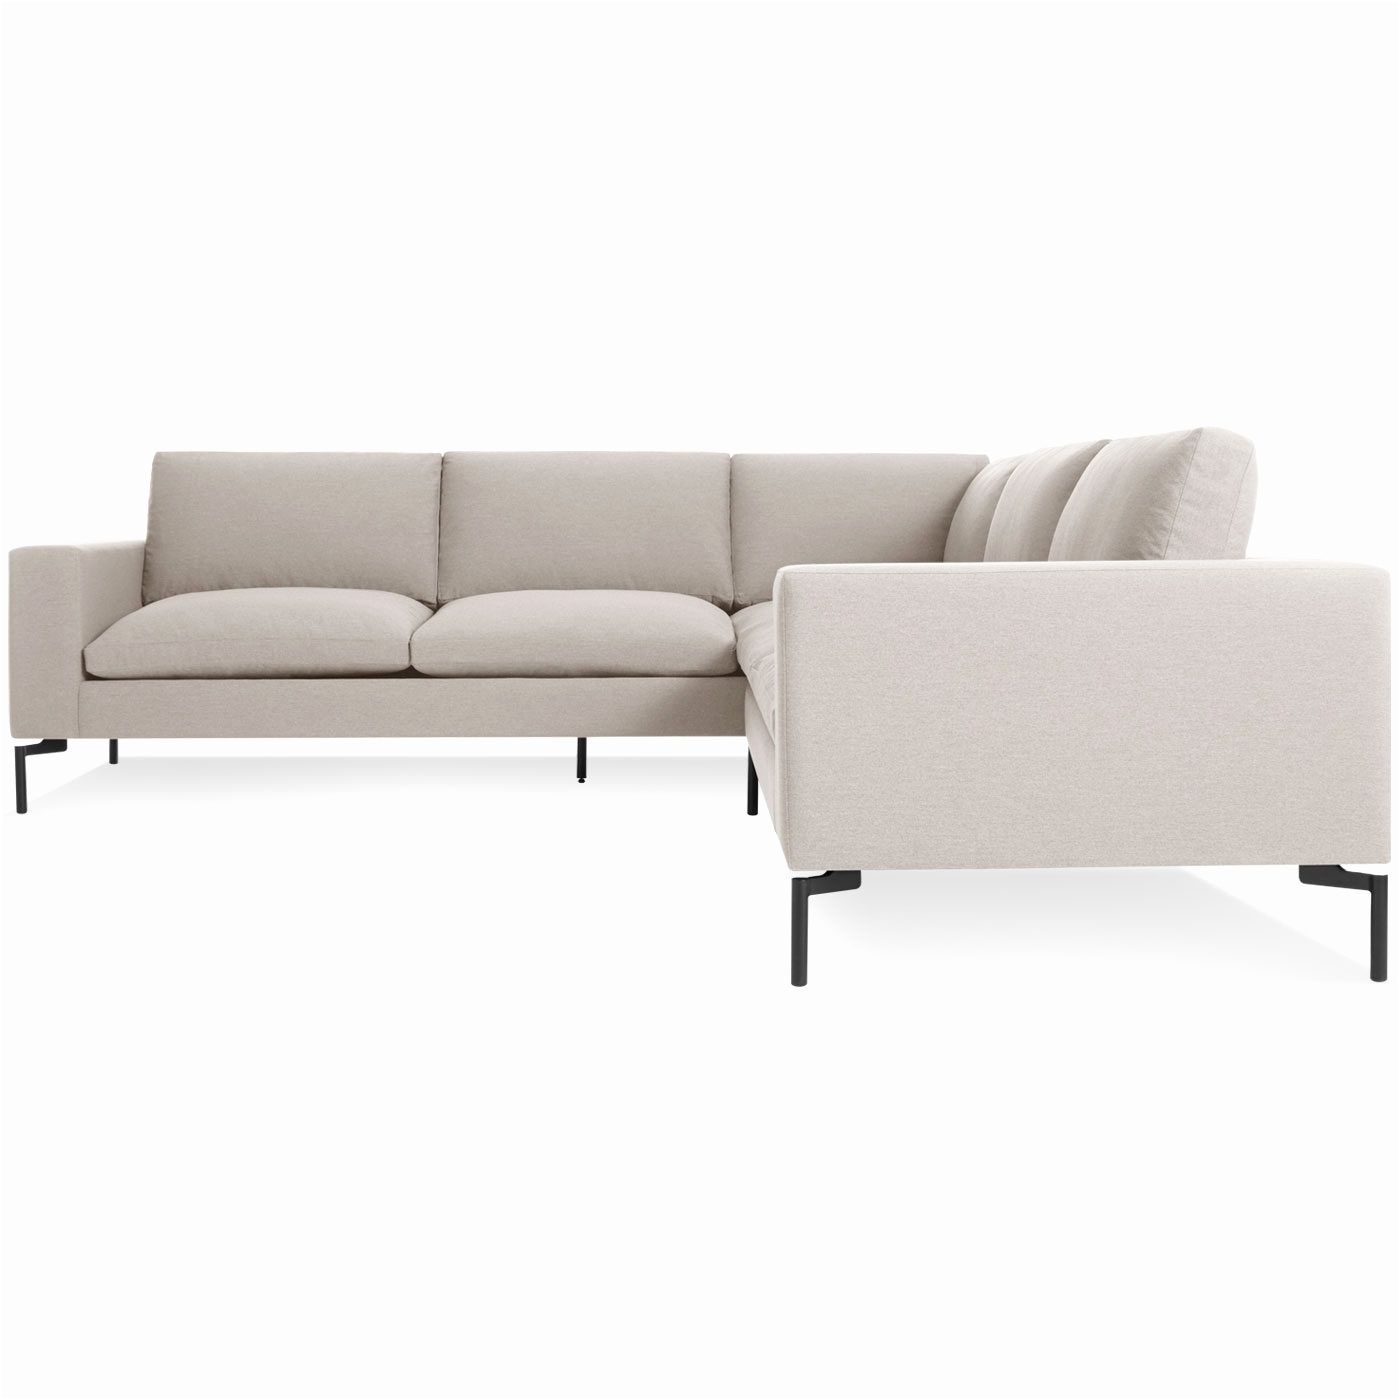 Living Room : Best Small Modern Sectionals Sectional Sofa Bed Regarding Current Small Sectional Sofas (View 7 of 20)